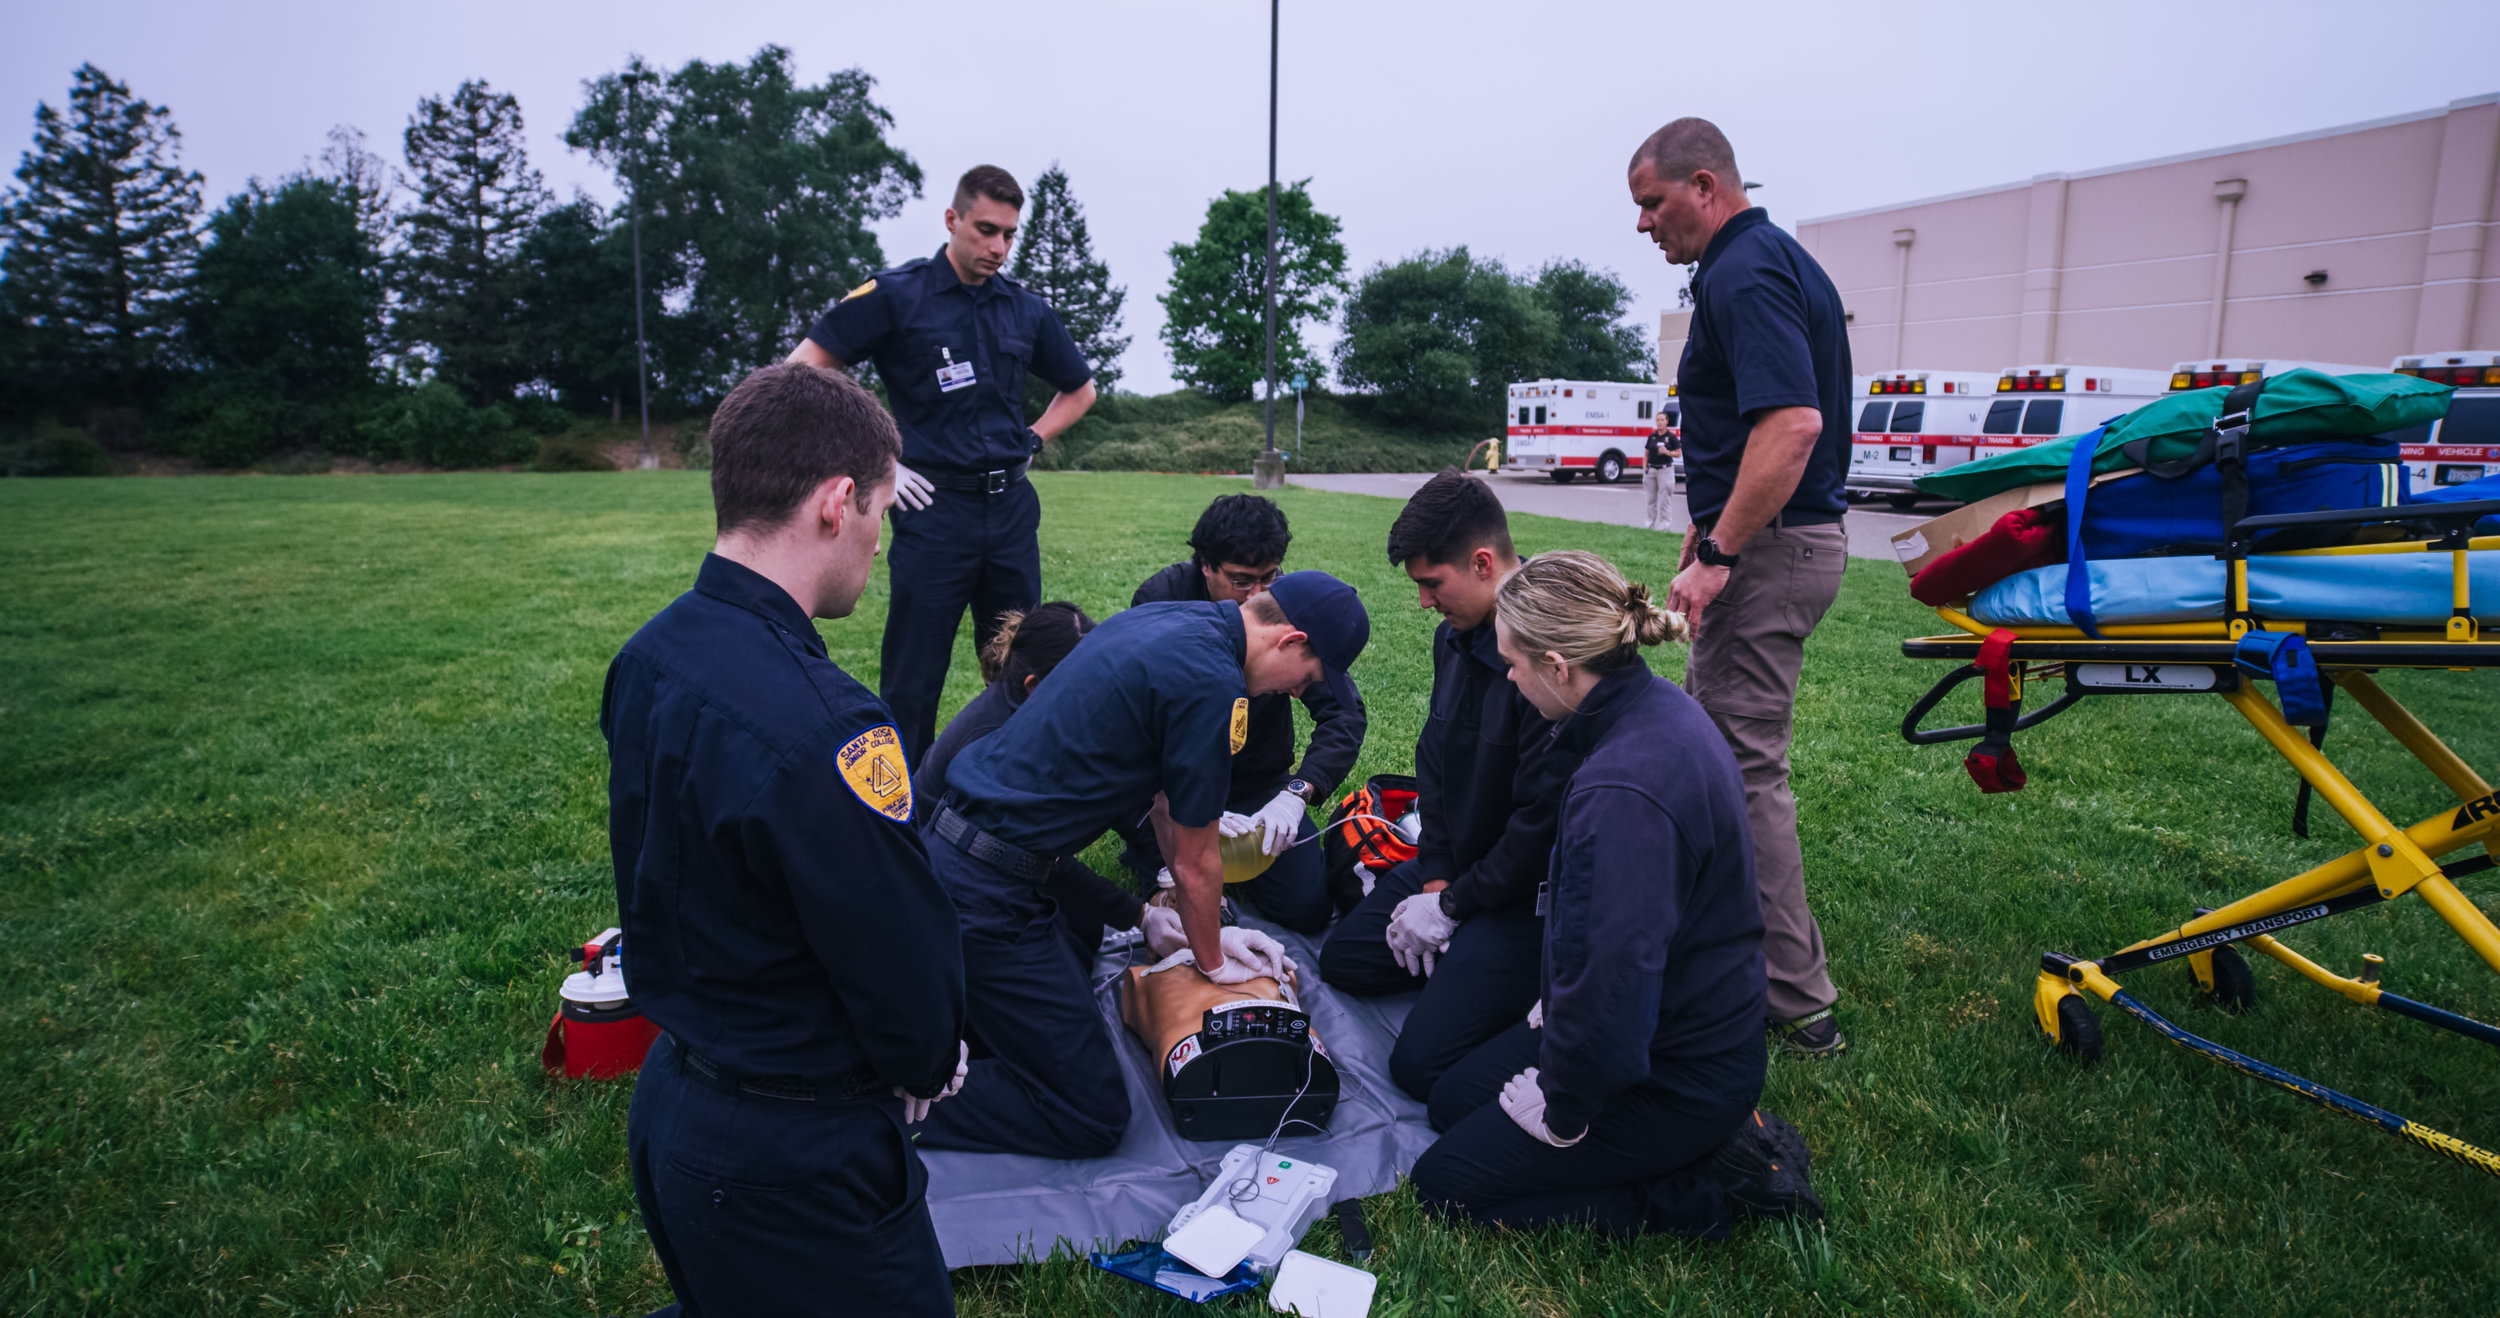 Students performing CPR on dummy in field